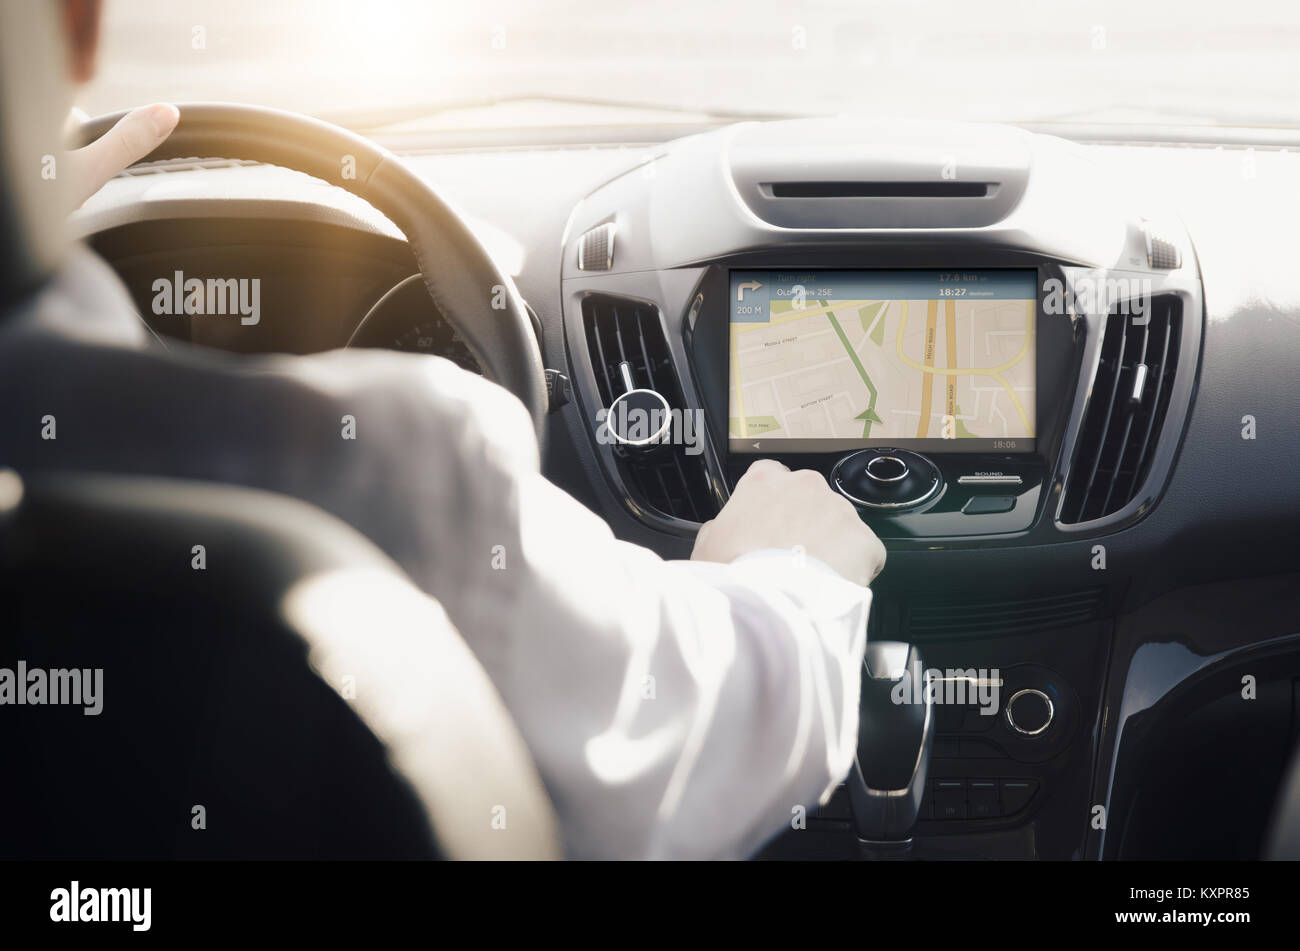 GPS navigation system. Person driving a car with satellite navigation. - Stock Image